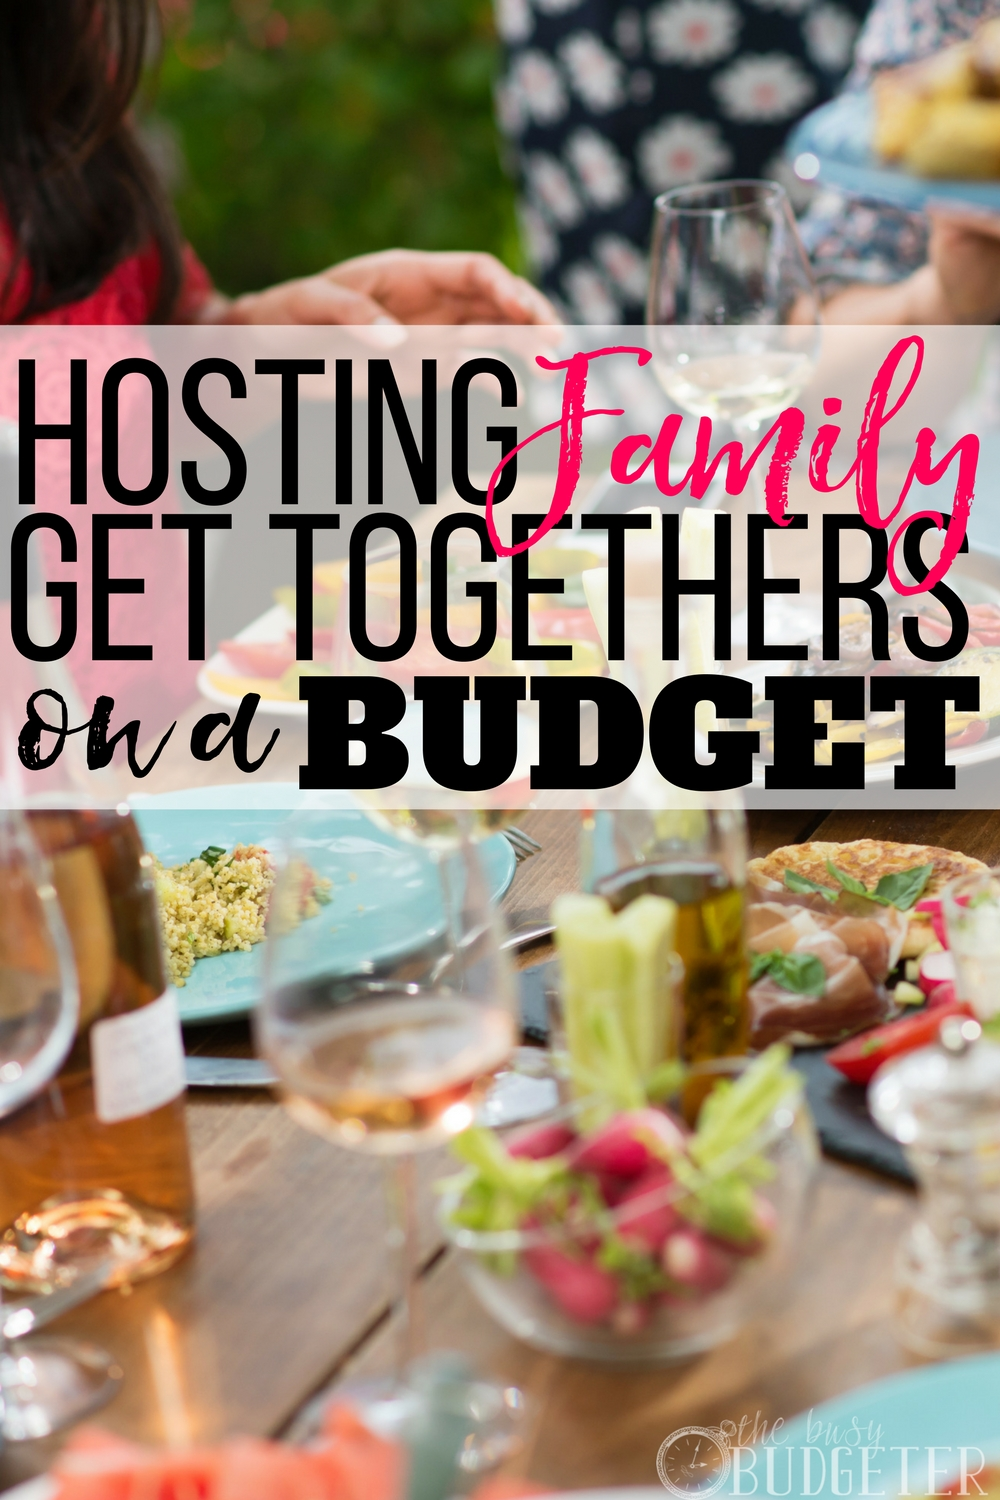 Every year MY home is where we host family get-togethers and I'm always worried about sticking to a budget. These are great budget party tips! Definitely save this post if you want to throw a fun family party for LESS!